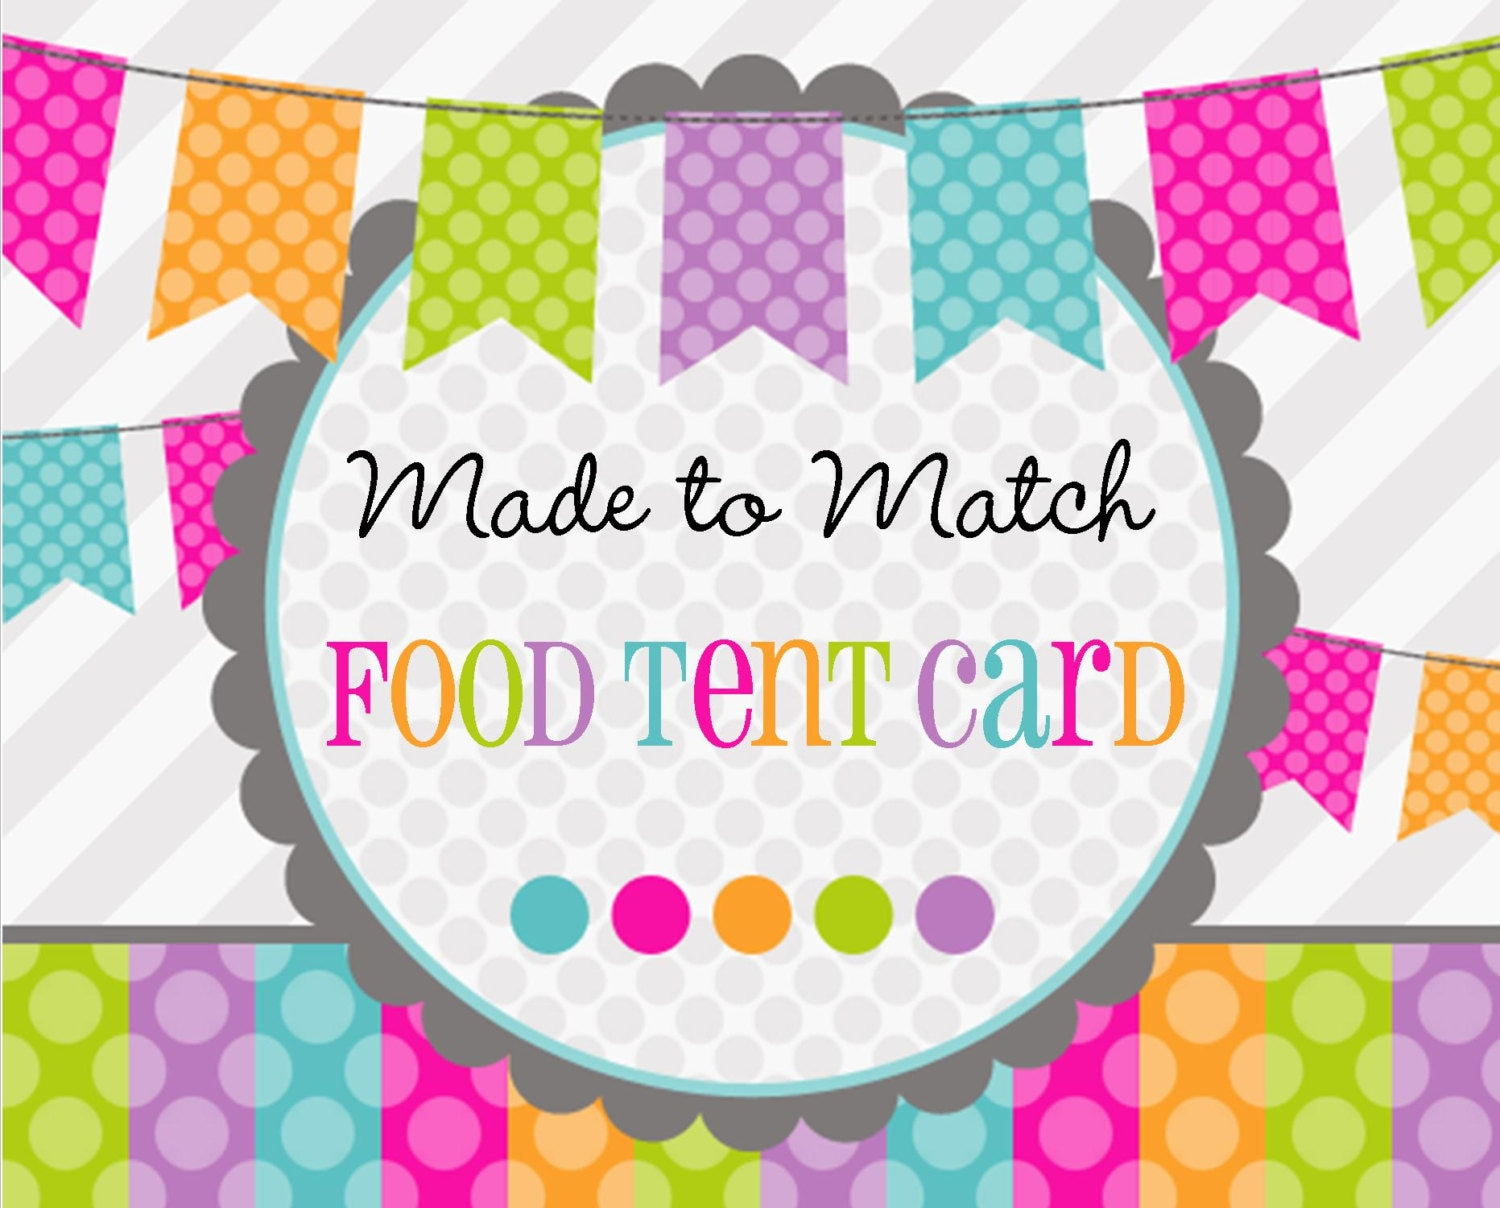 made 2 match printable food tent cards buffet cards labels